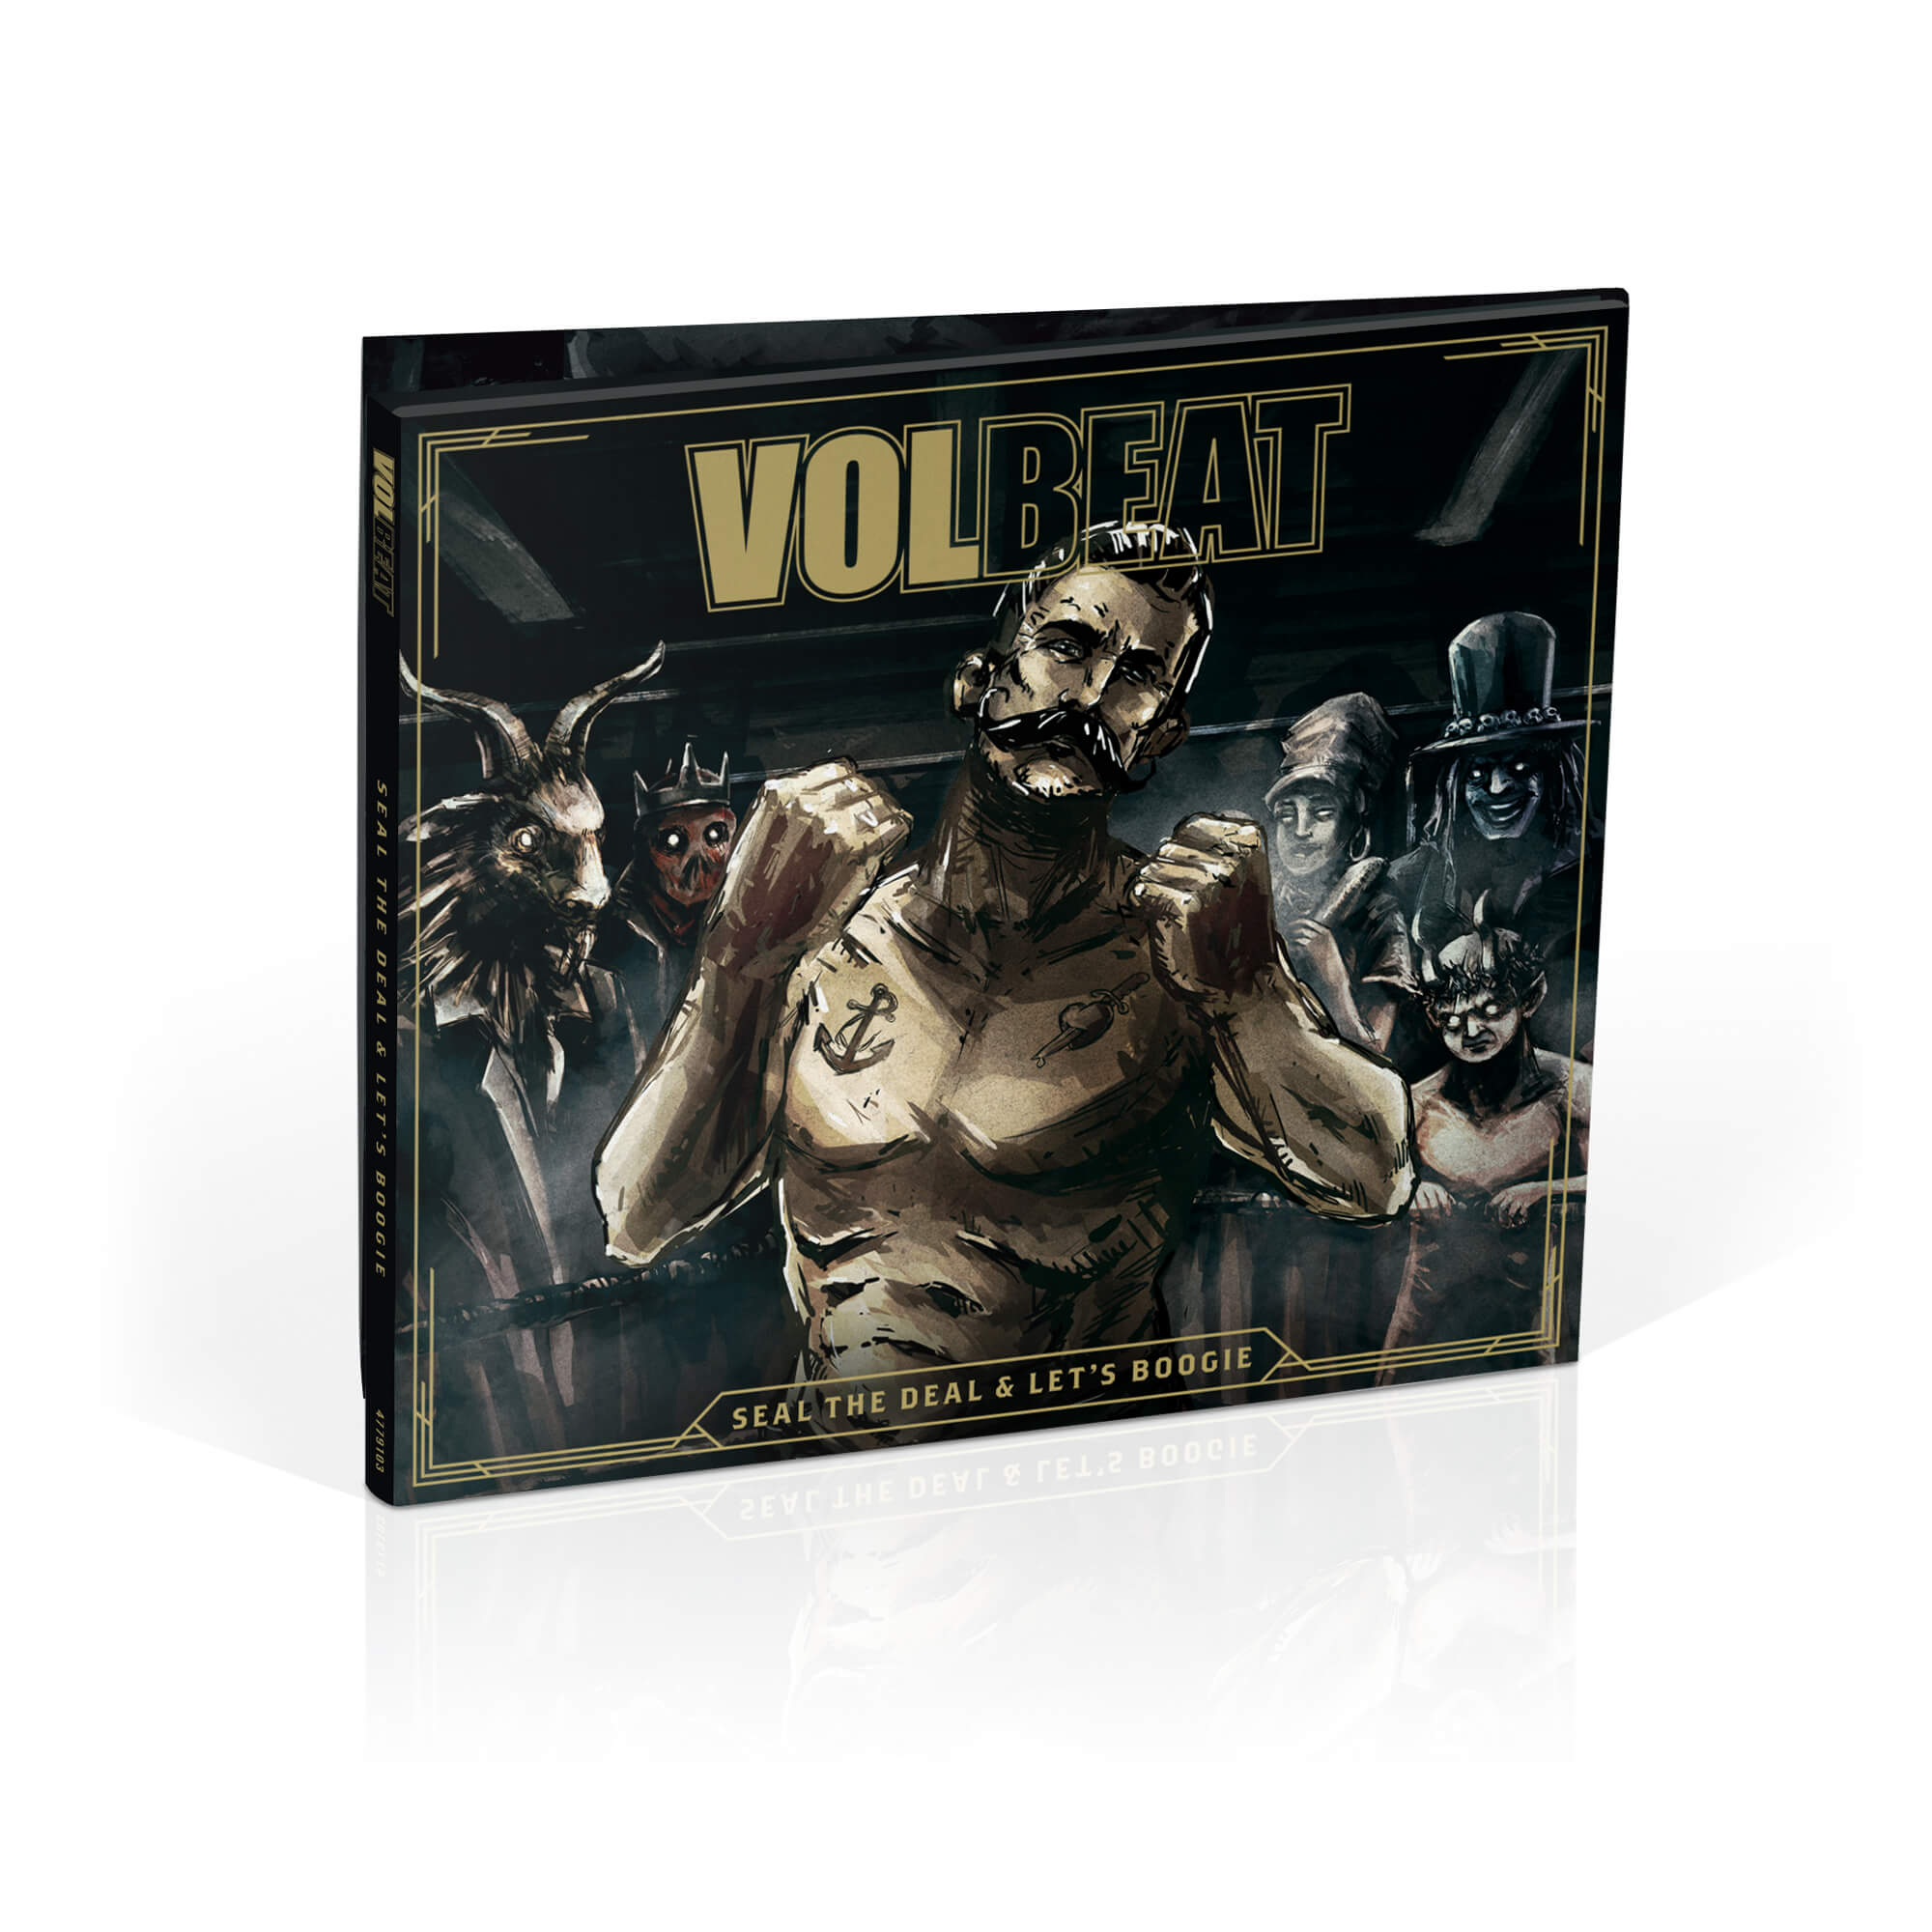 √Seal The Deal & Let's Boogie (Ltd.Deluxe Edt.) von Volbeat - CD jetzt im Volbeat Shop